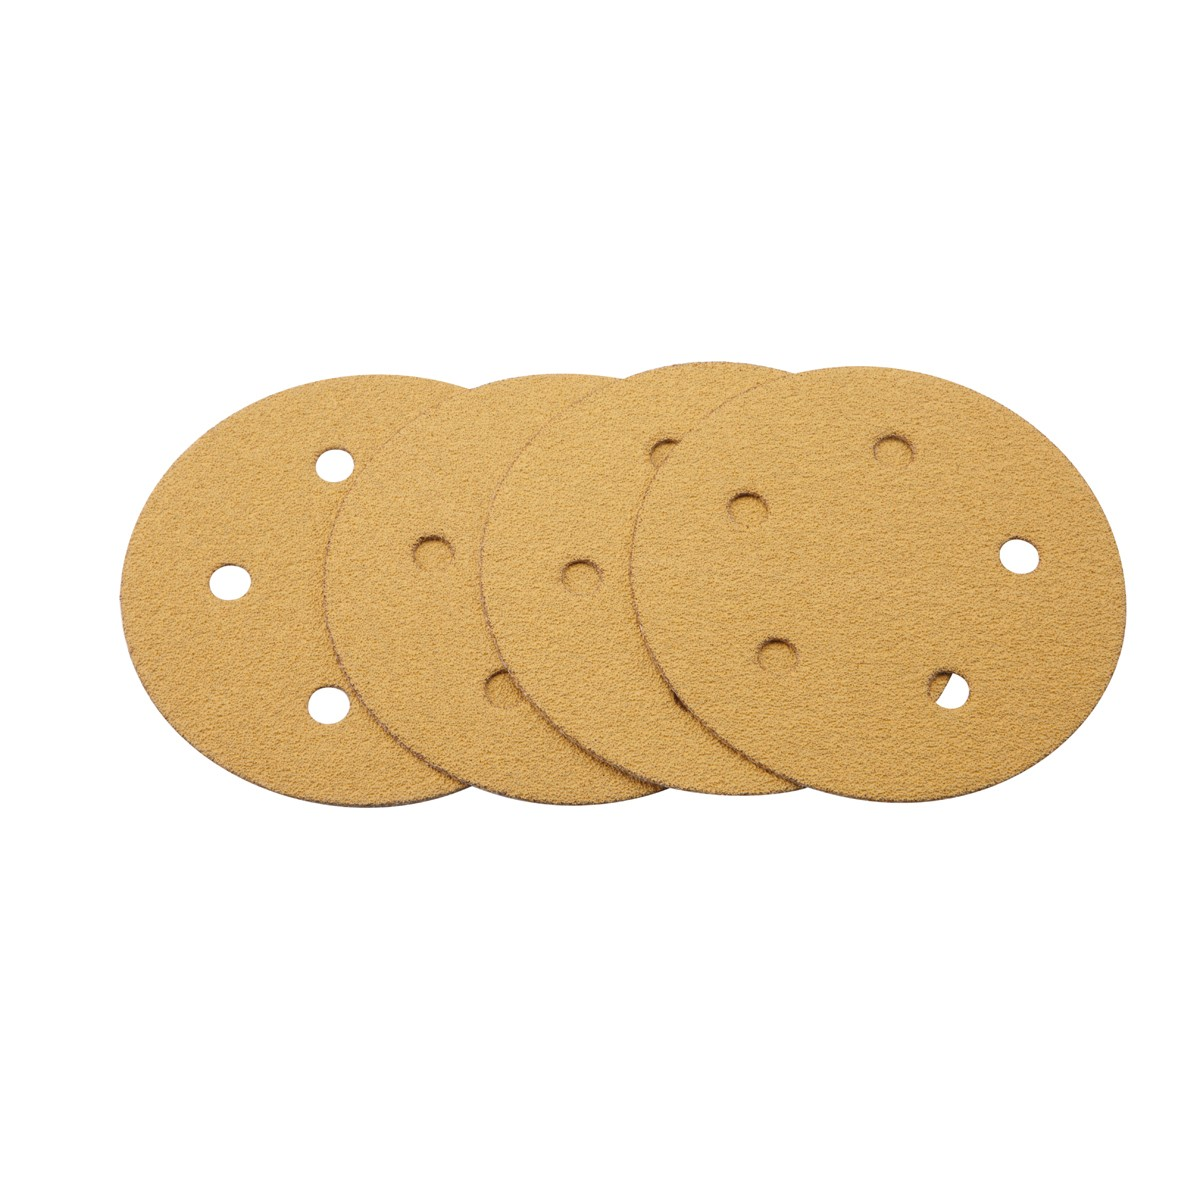 5 in. 60 Grit Hook and Loop Sanding Discs 4 Pc